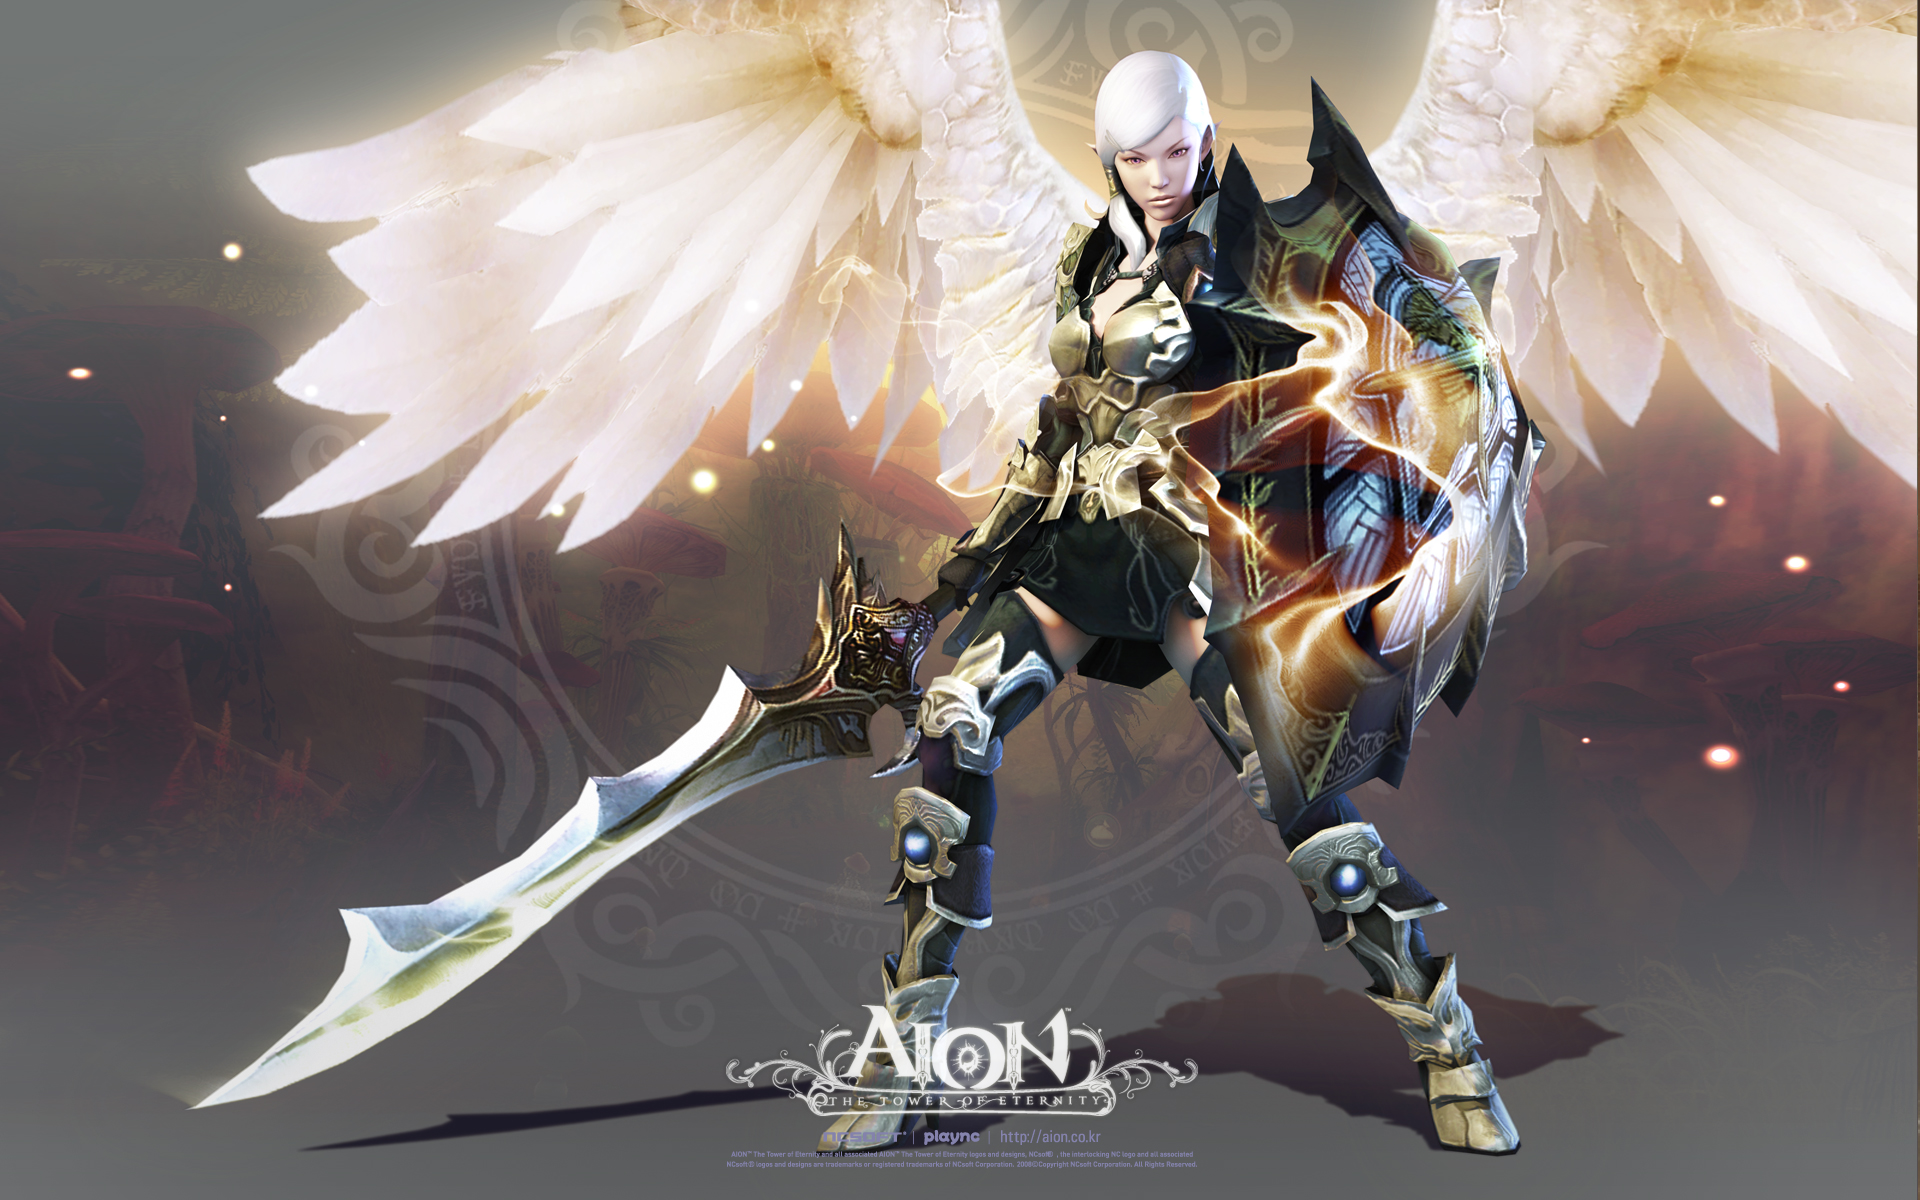 Les Wallpapers HD pour toi public - Aion Race 2 Wallpapers Hd